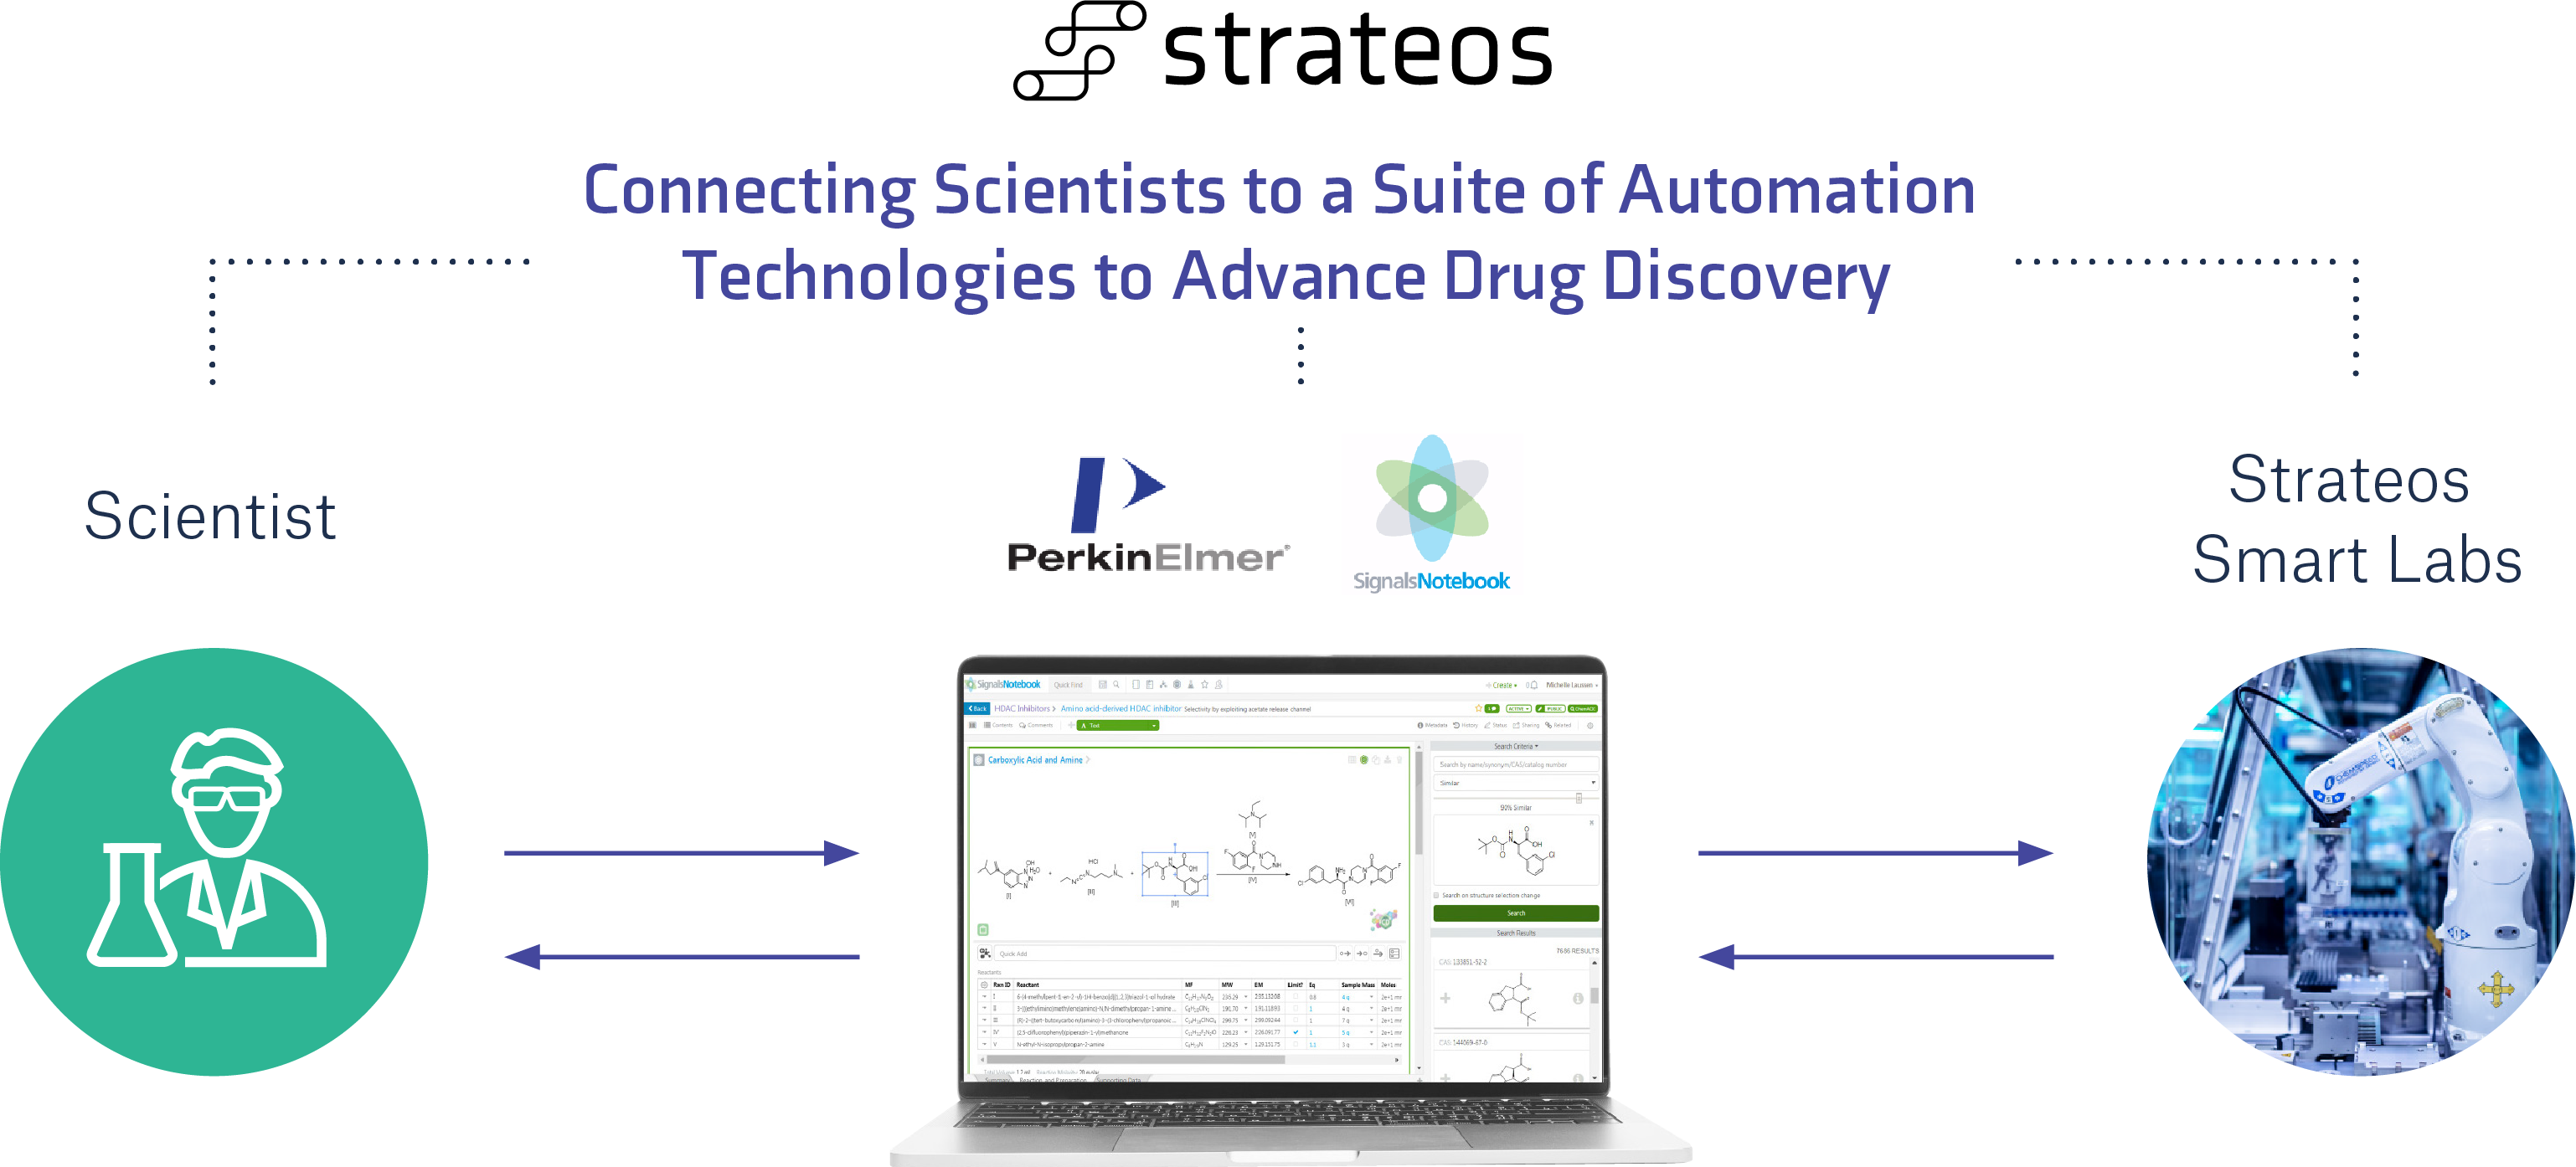 Ideas, experiments, and data captured in Strateos Platform & PerkinElmer Signals Notebook